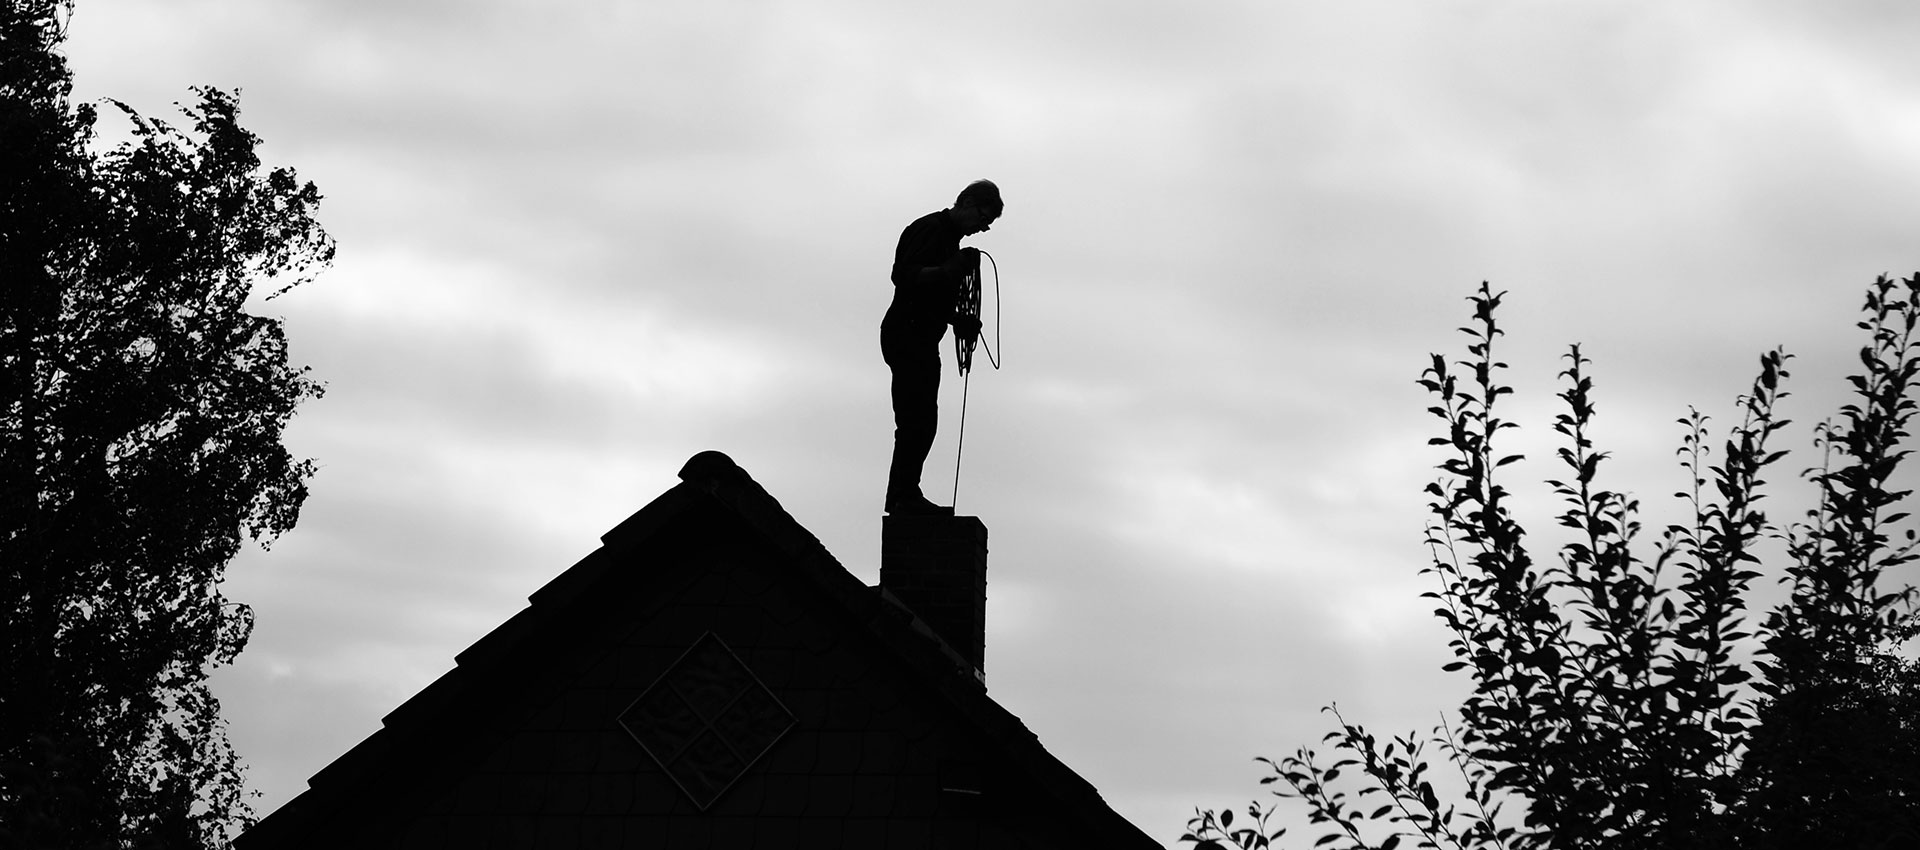 Chim-Chiminey Sweep: Chimney Sweep, Chimney Repairs and WETT in Coquitlam, Langley and Maple Ridge